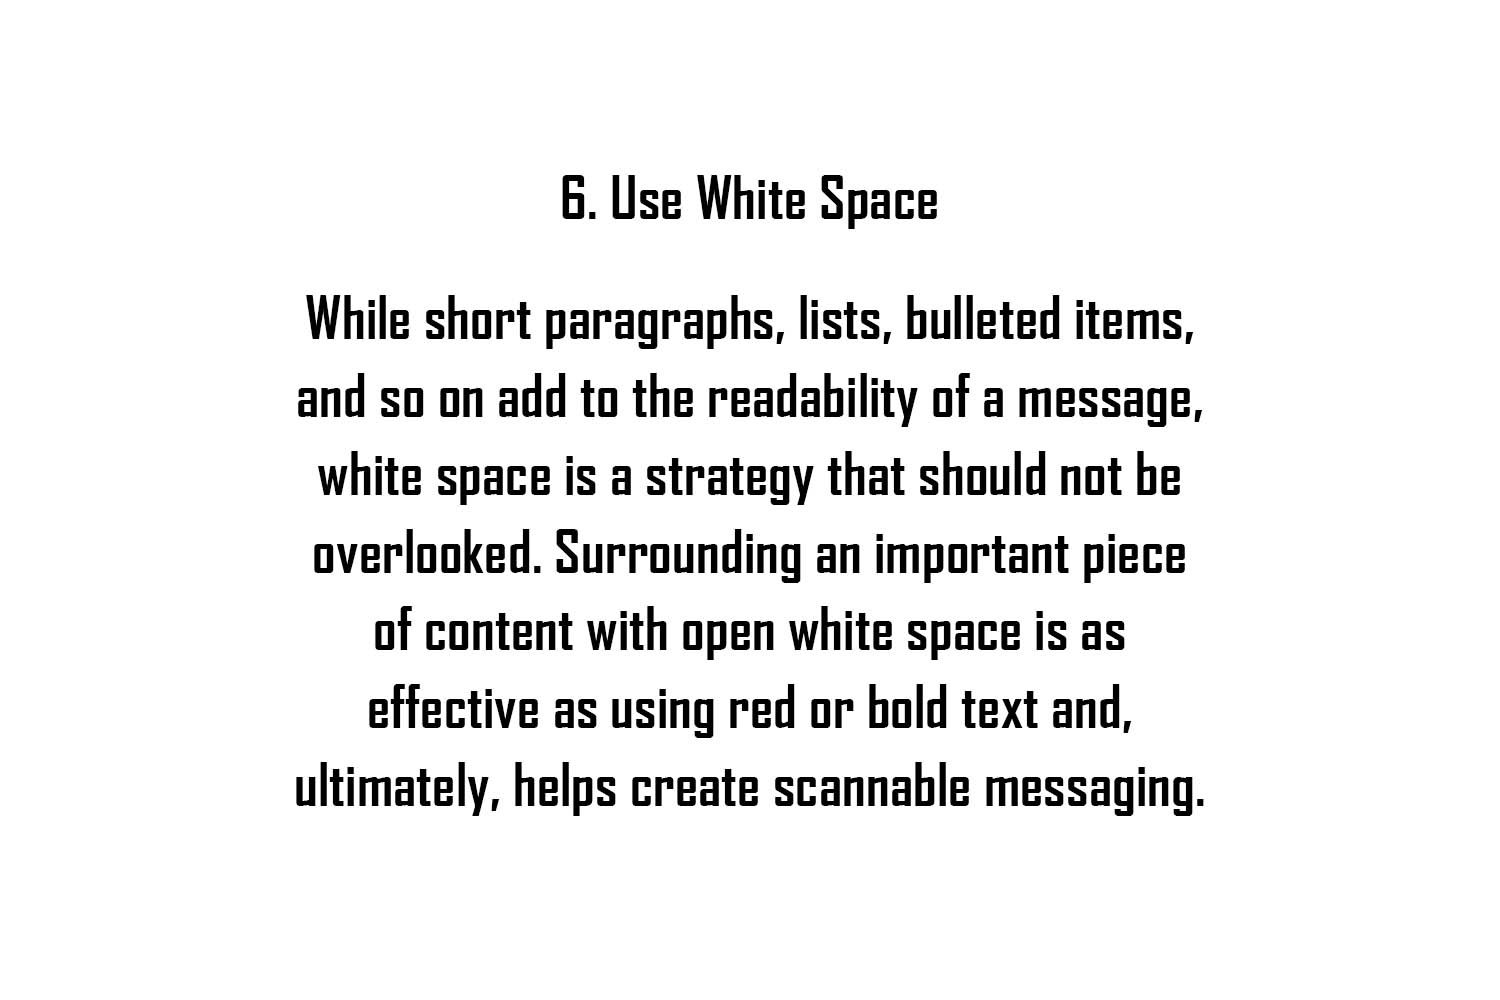 Example that shows text surrounded by a lot of white space to increase the readability.